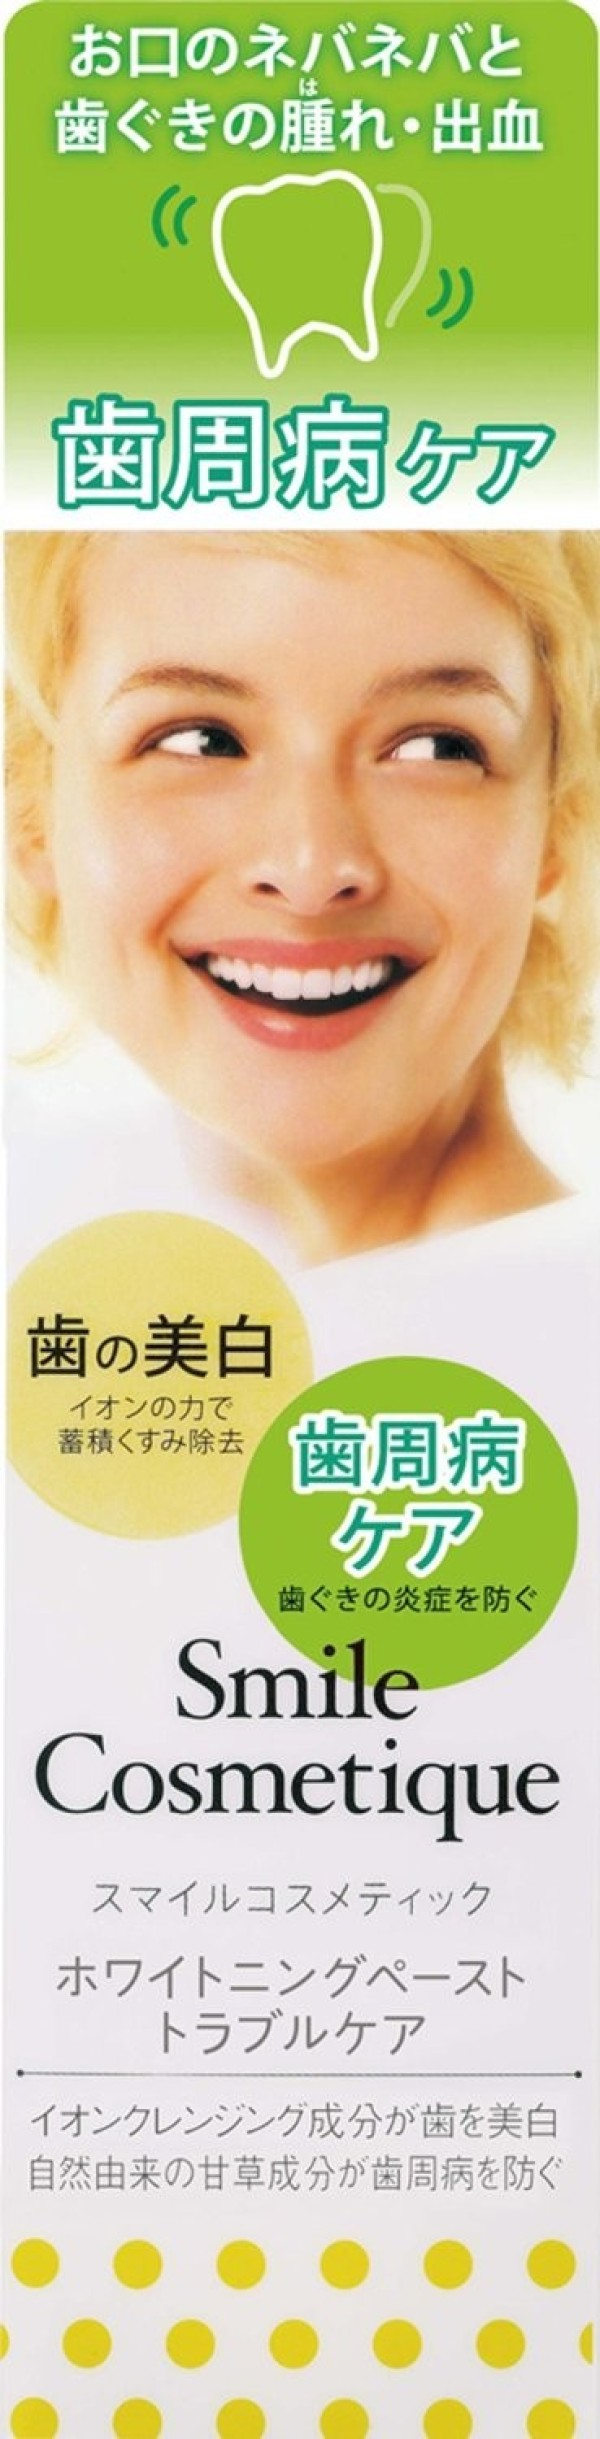 Smile Cosmetique Whitening Paste Trouble Care